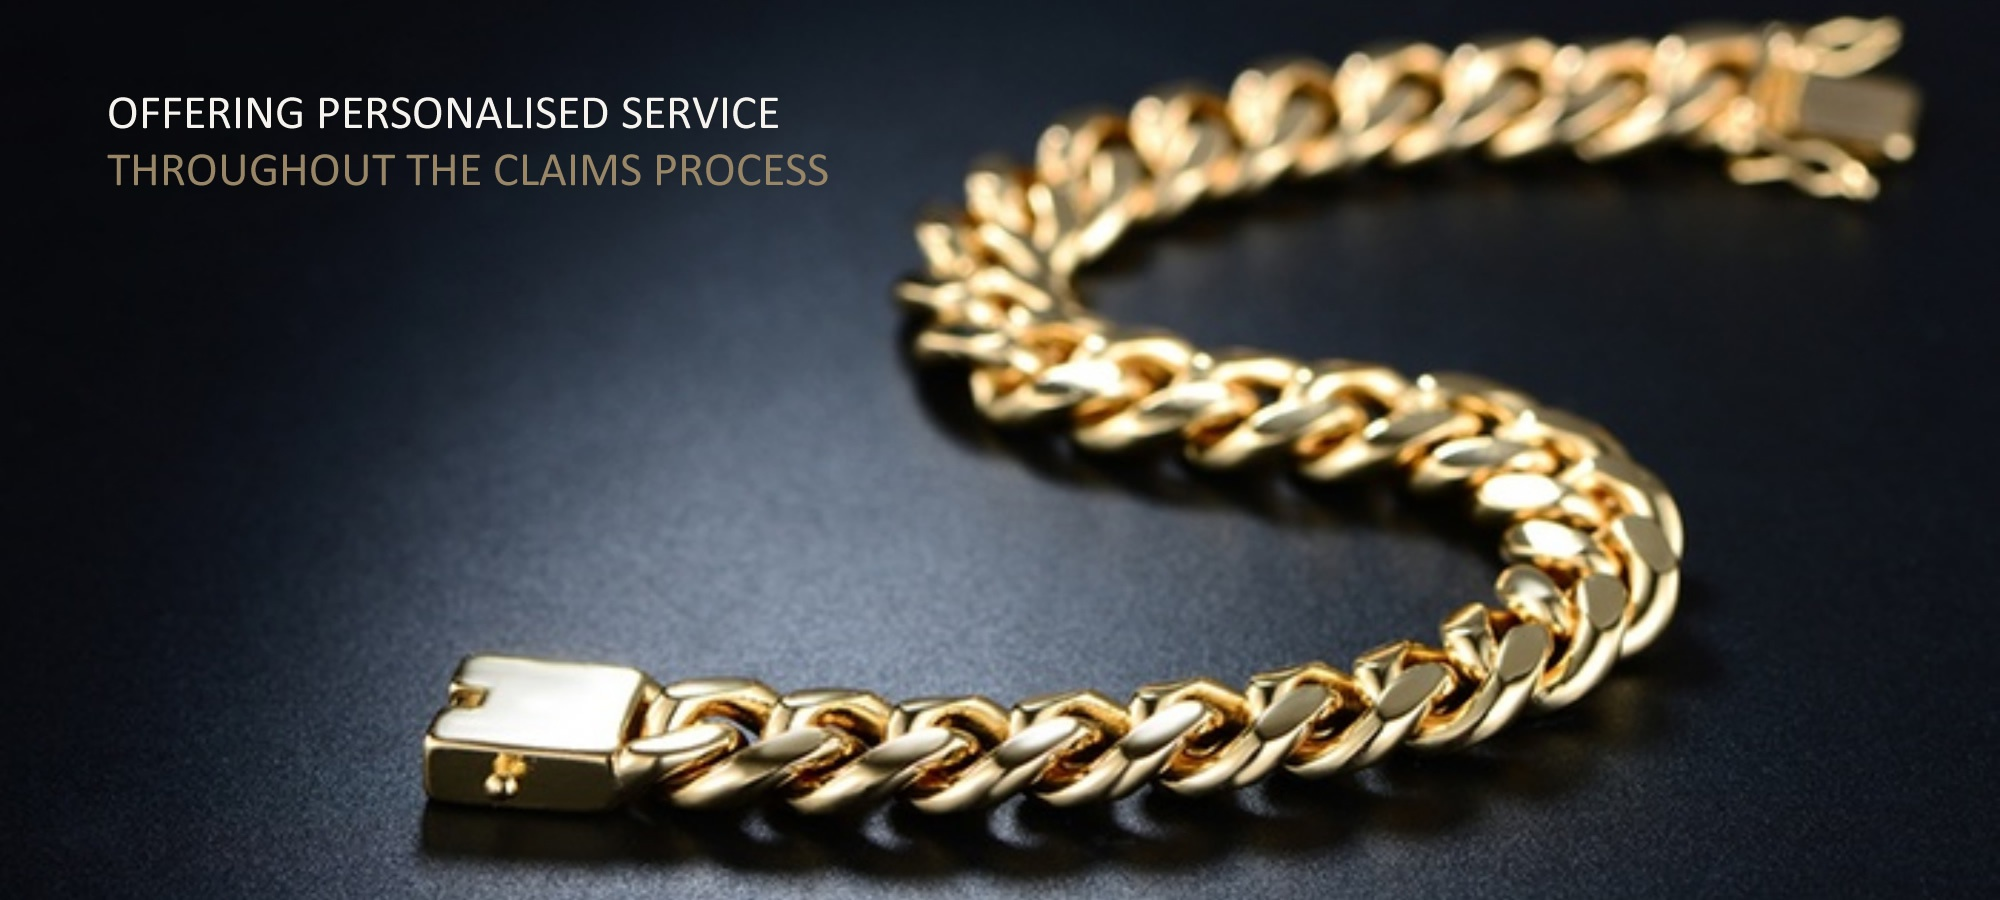 offering personalised service throughout the claims process